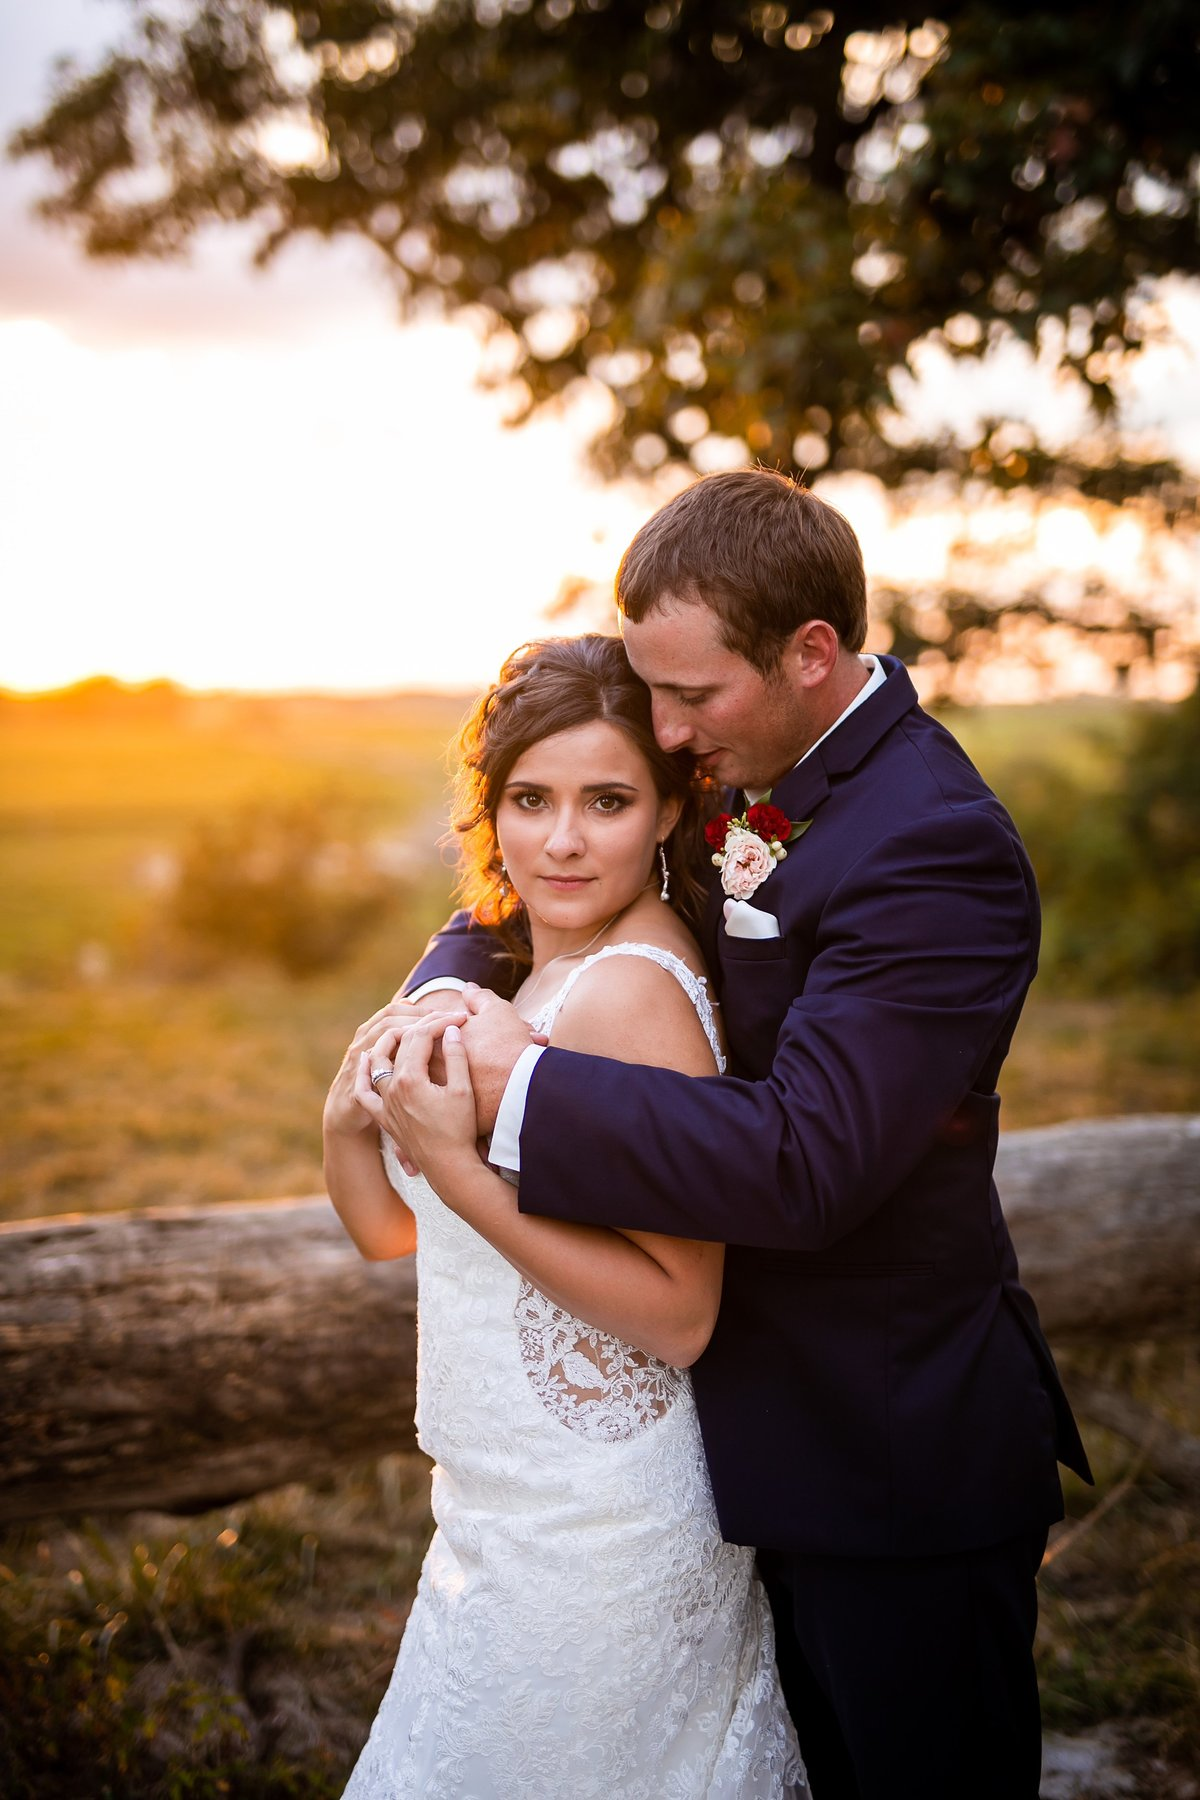 barn-outdoor-pond-wedding-burgundy-blush-sunset-4341